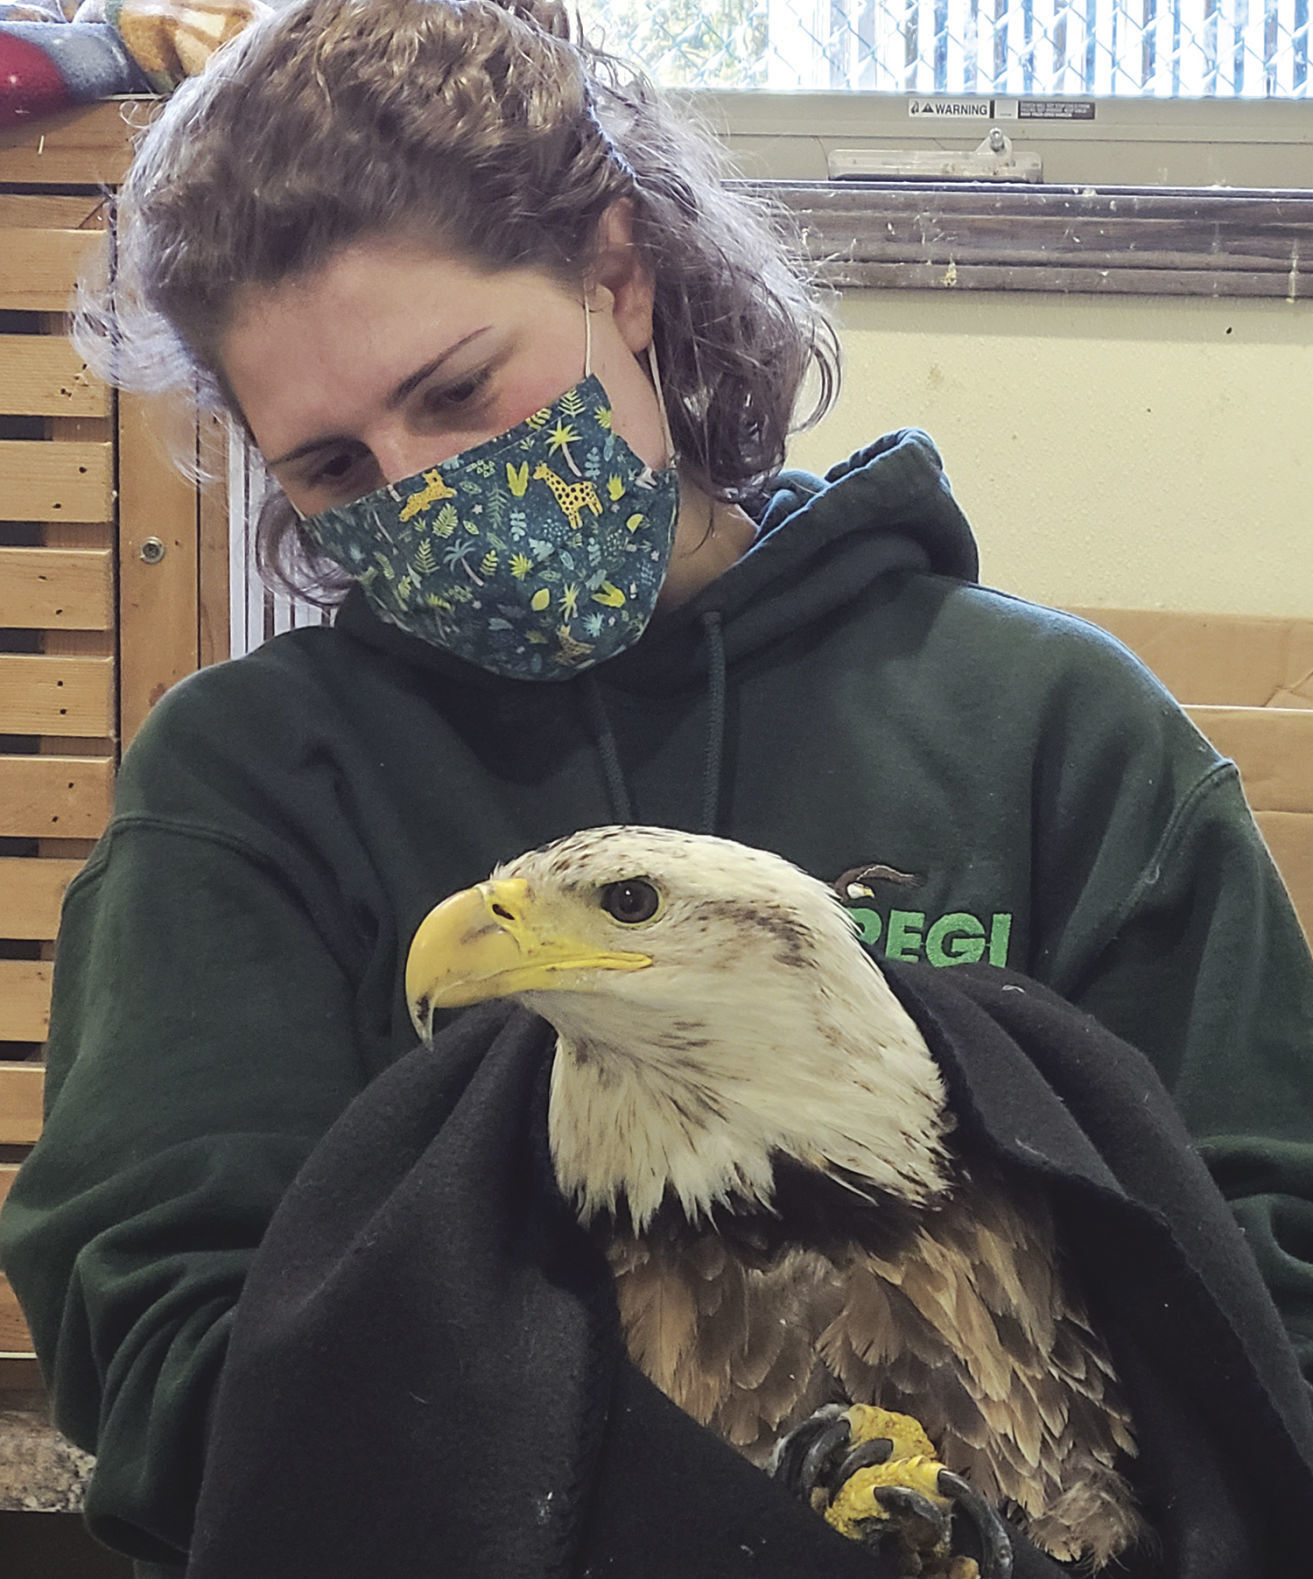 Watertown eagle being cared for by raptor group